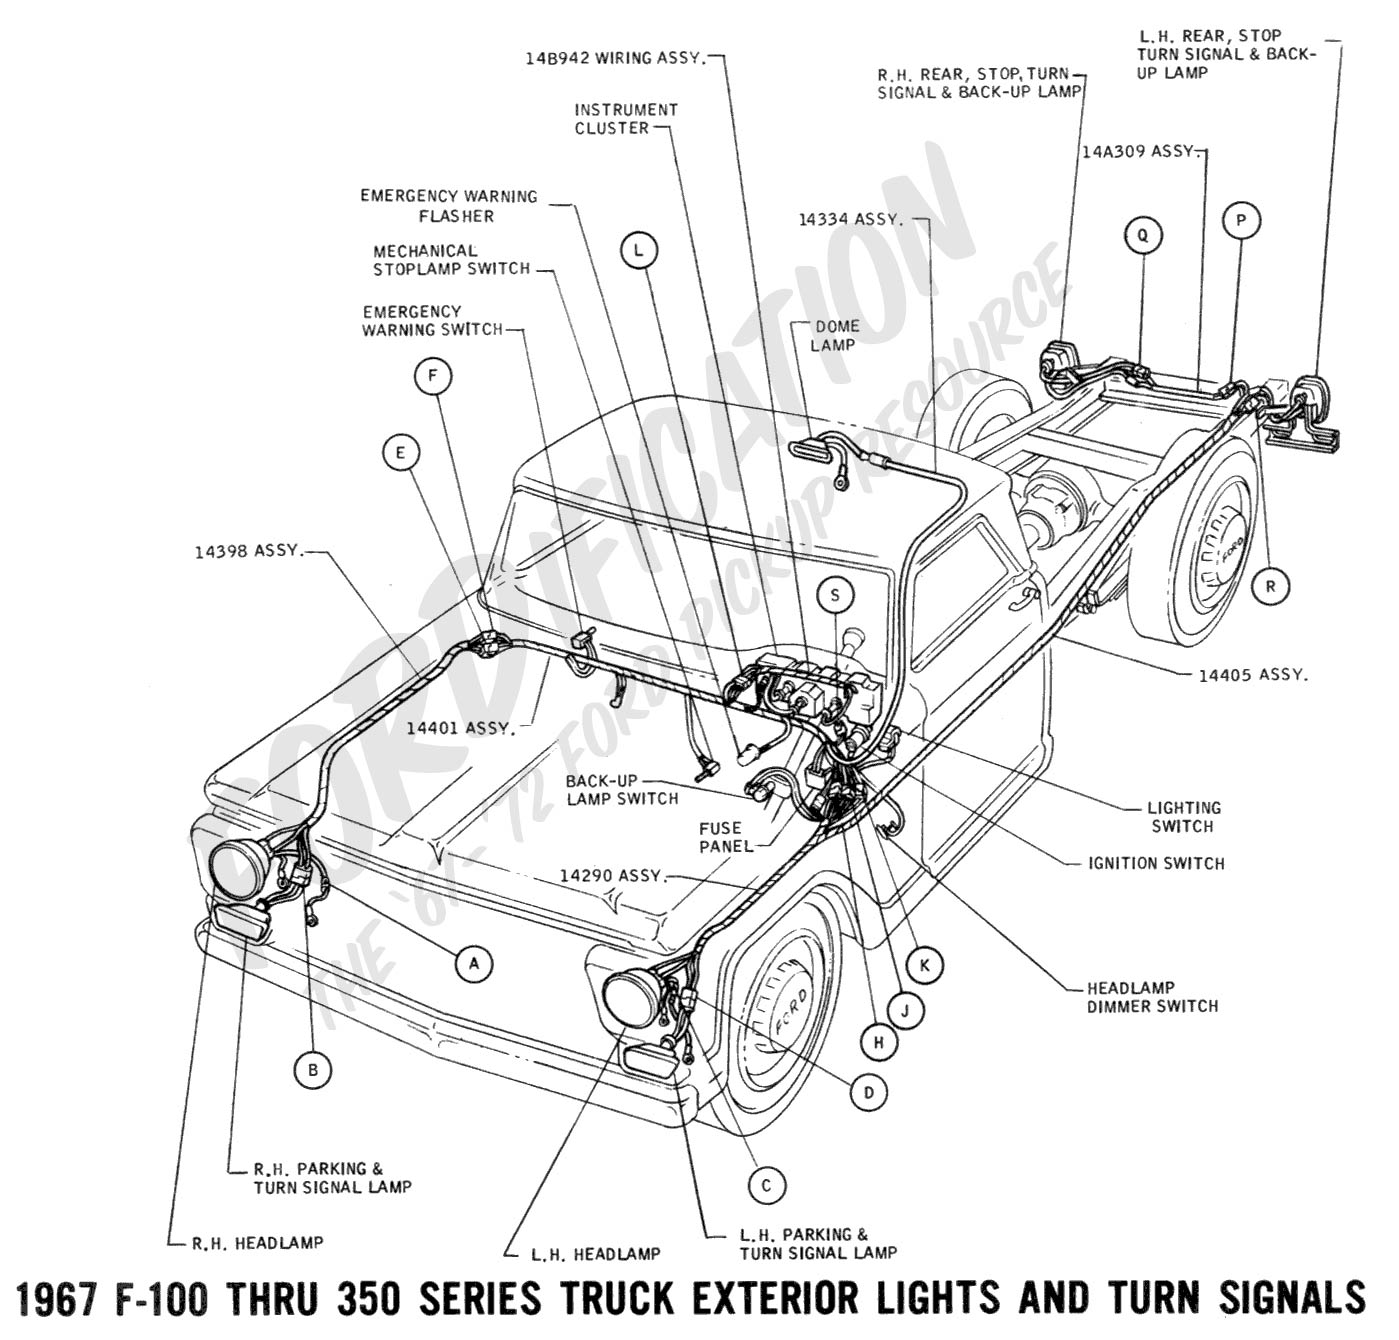 wiring 1967extlights01 ford truck technical drawings and schematics section h wiring 1999 ford ranger xlt wiring diagrams at webbmarketing.co